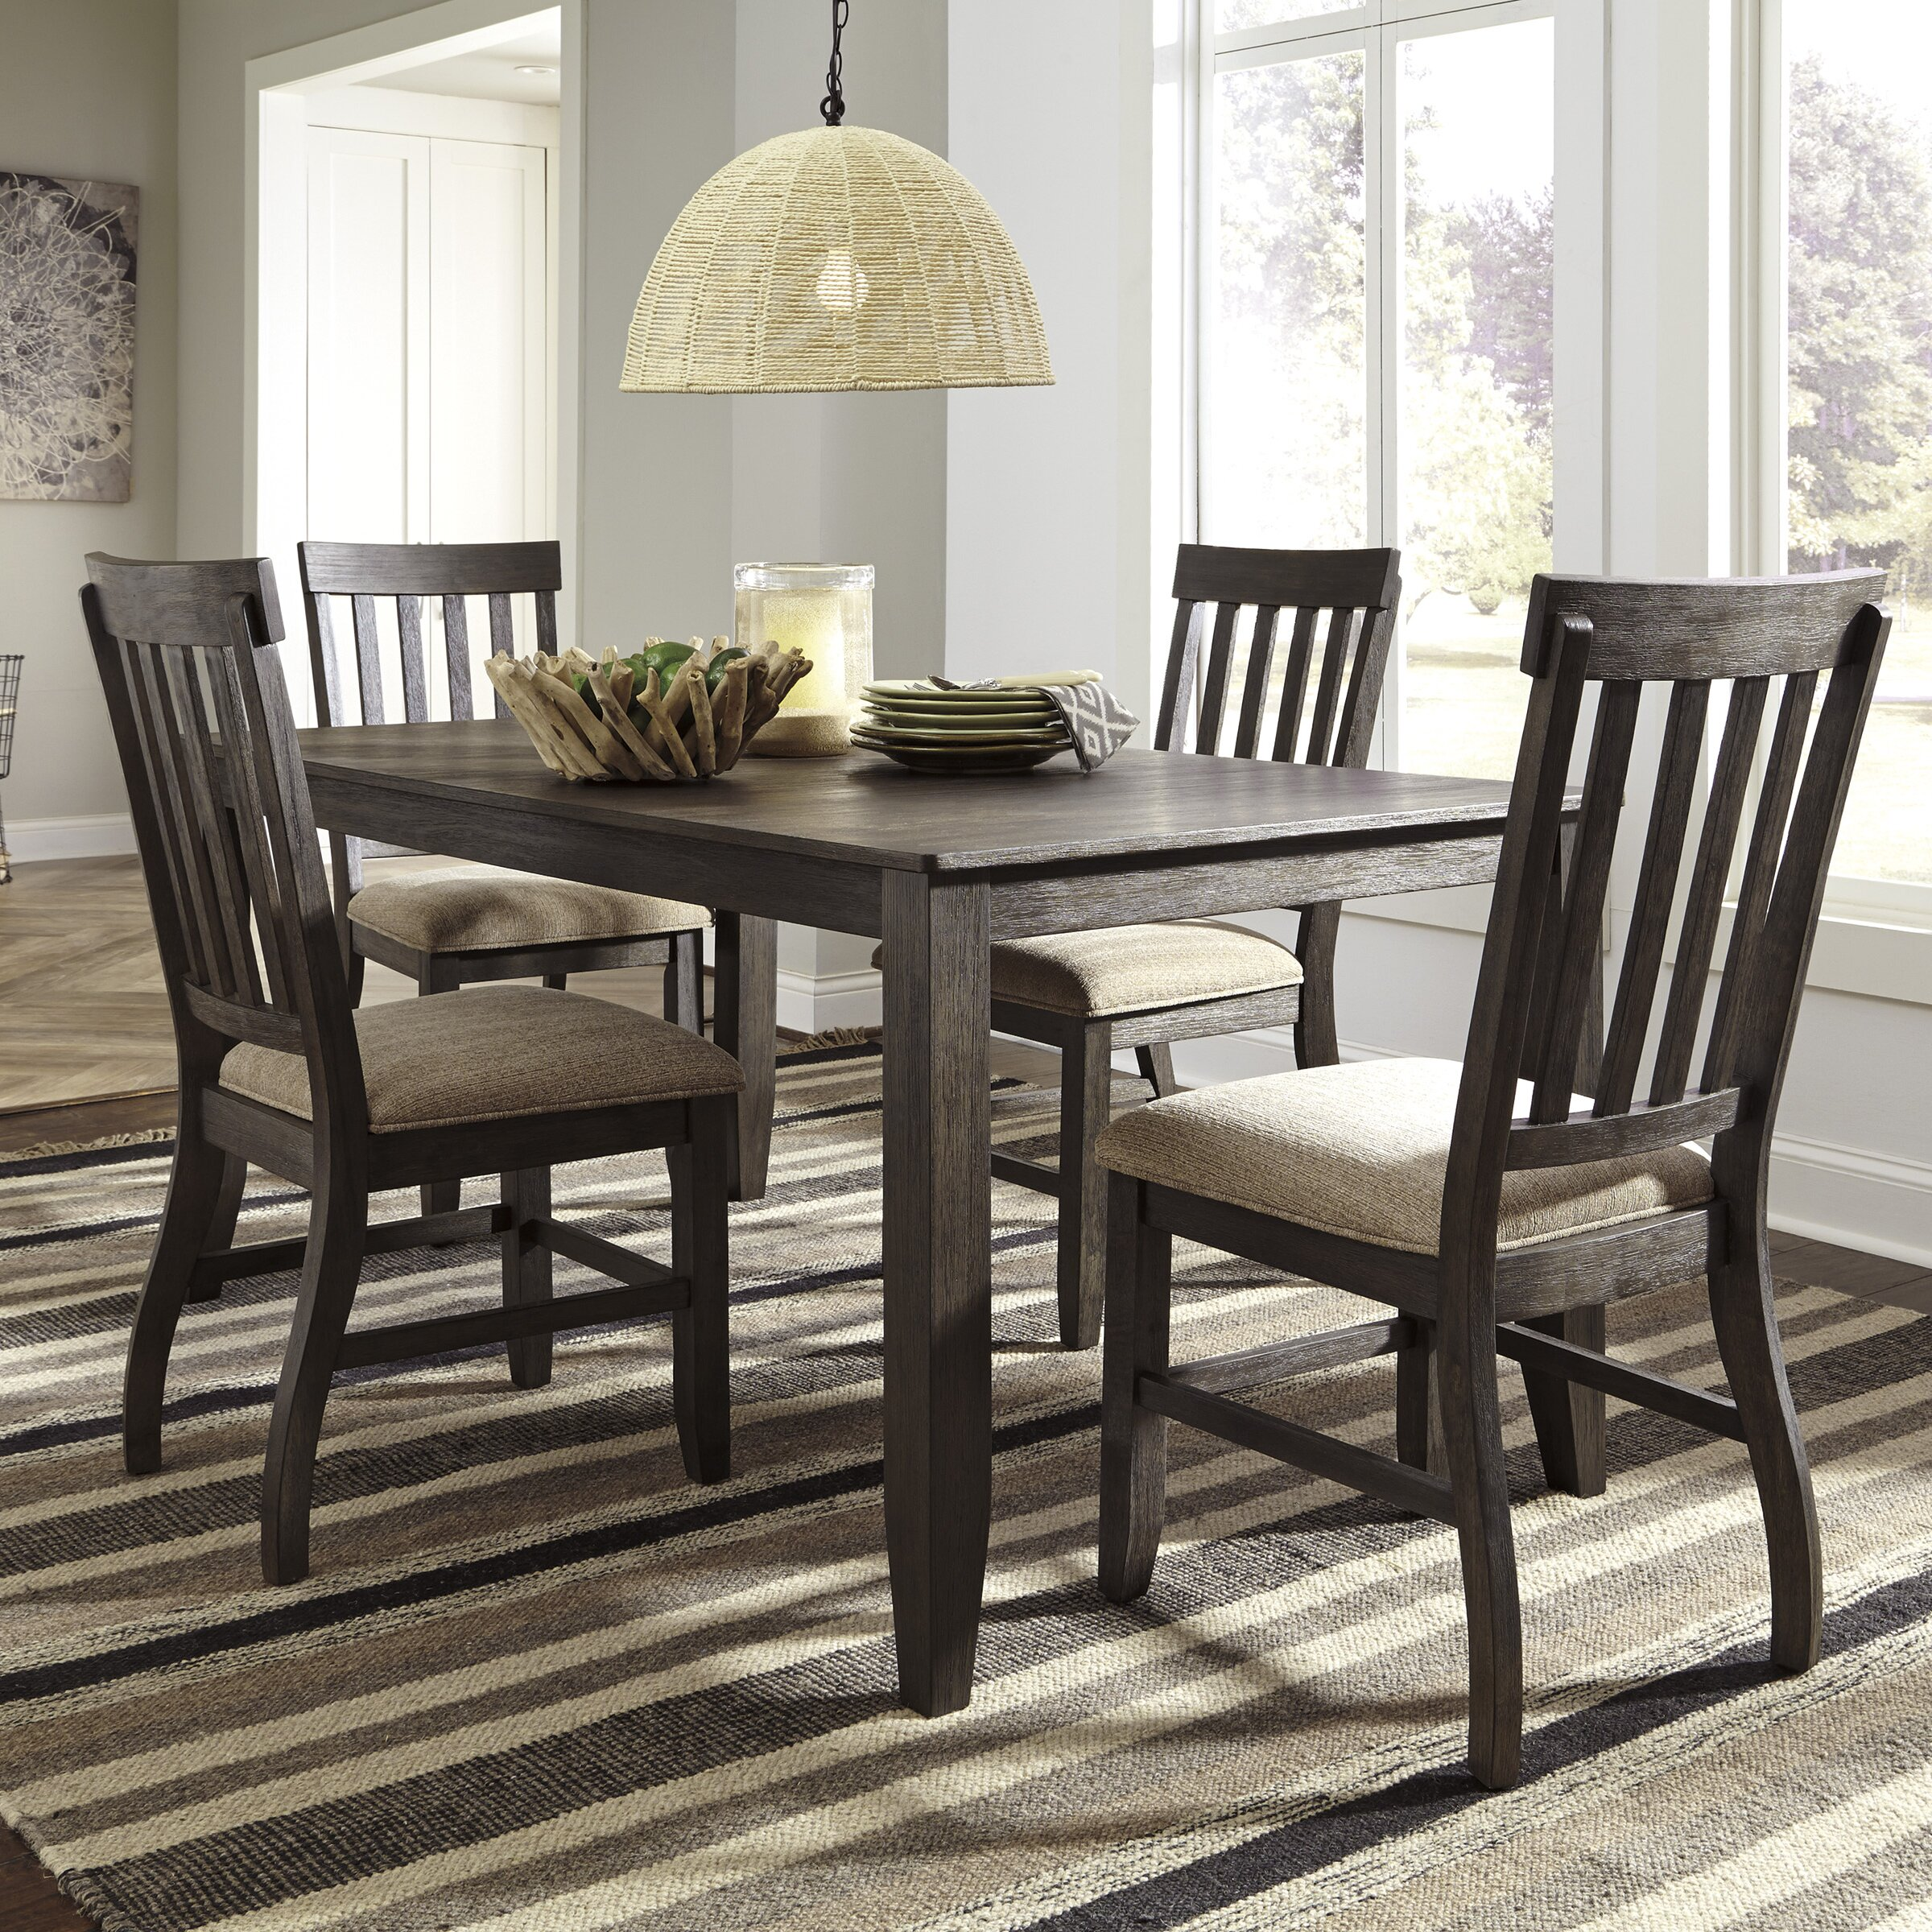 Ashley Furniture Dinette Set: Signature Design By Ashley 5 Piece Dining Set & Reviews